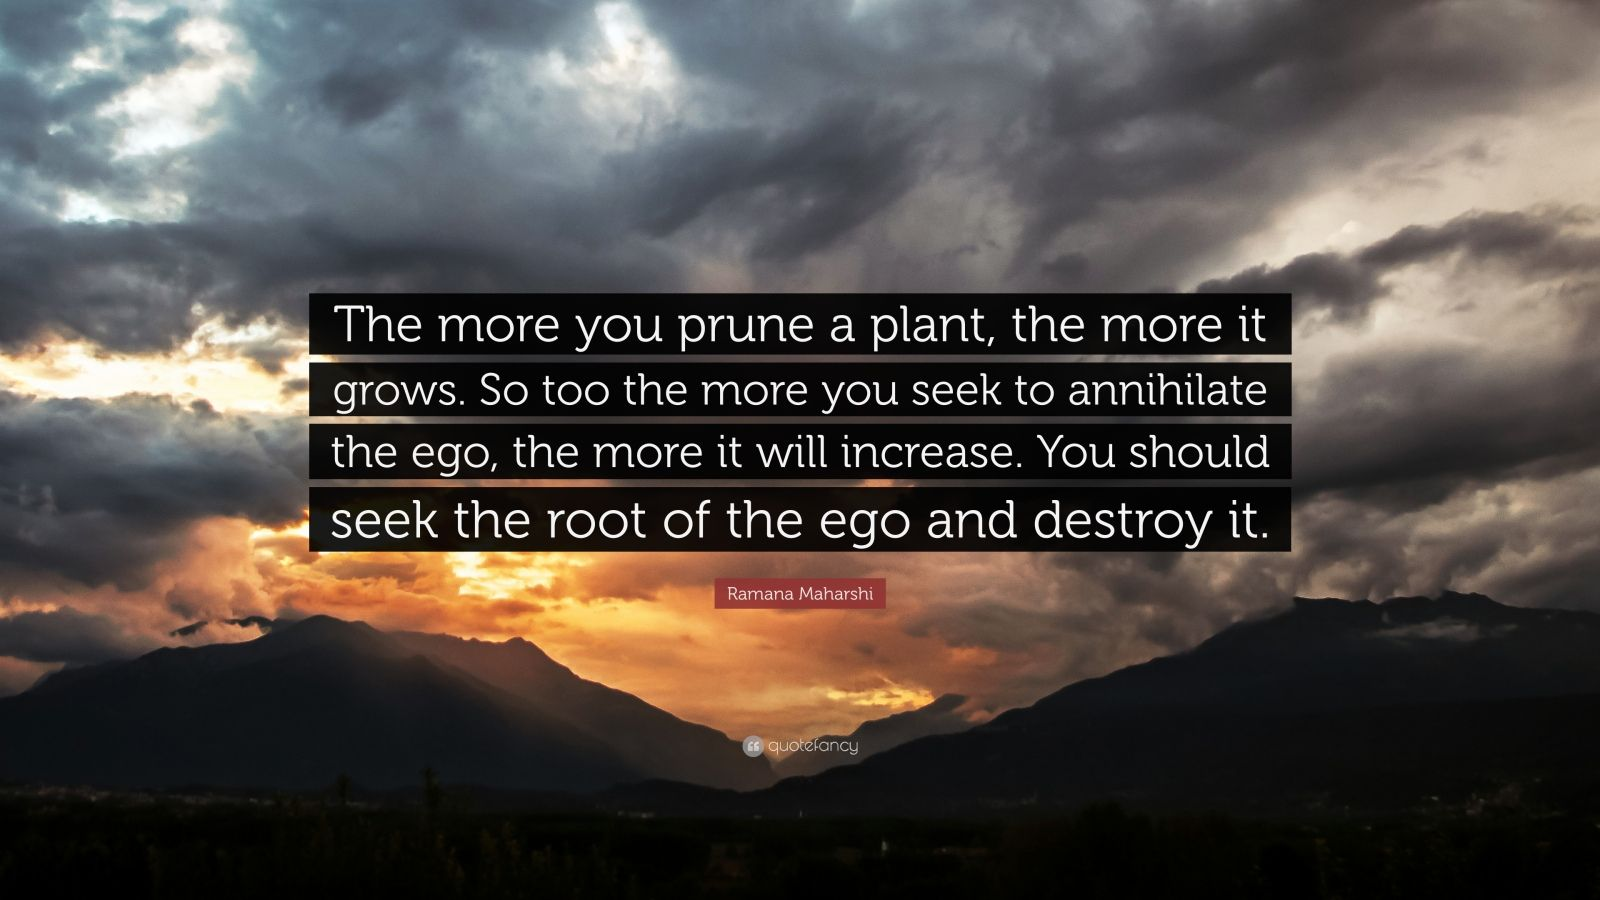 """Ramana Maharshi Quote: """"The more you prune a plant, the more it grows. So too the more you seek to annihilate the ego, the more it will increase. You should seek the root of the ego and destroy it."""""""